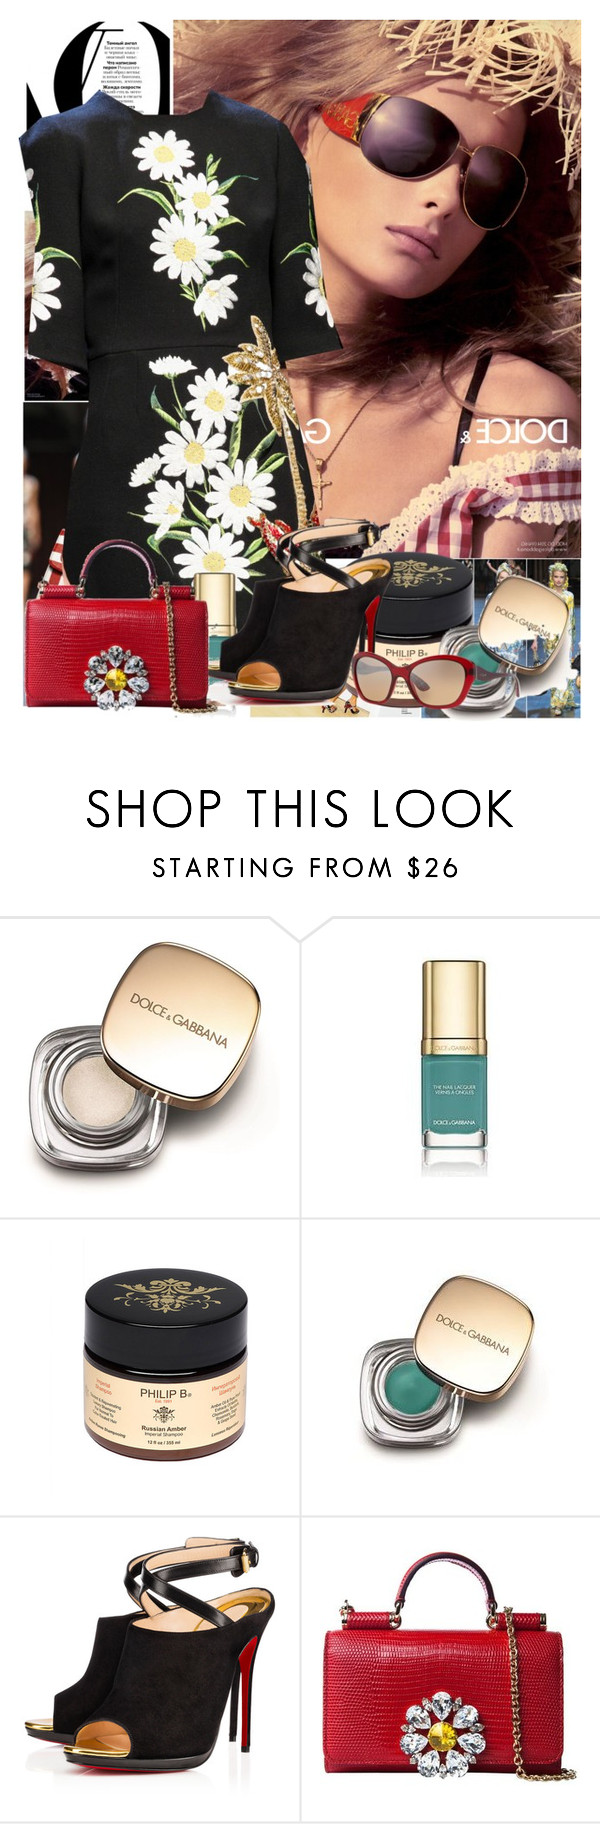 """""""Untitled 1468"""" by ceca-66 ❤ liked on Polyvore featuring Claudia Schiffer, Dolce&Gabbana, Philip B, Christian Louboutin and Vogue"""